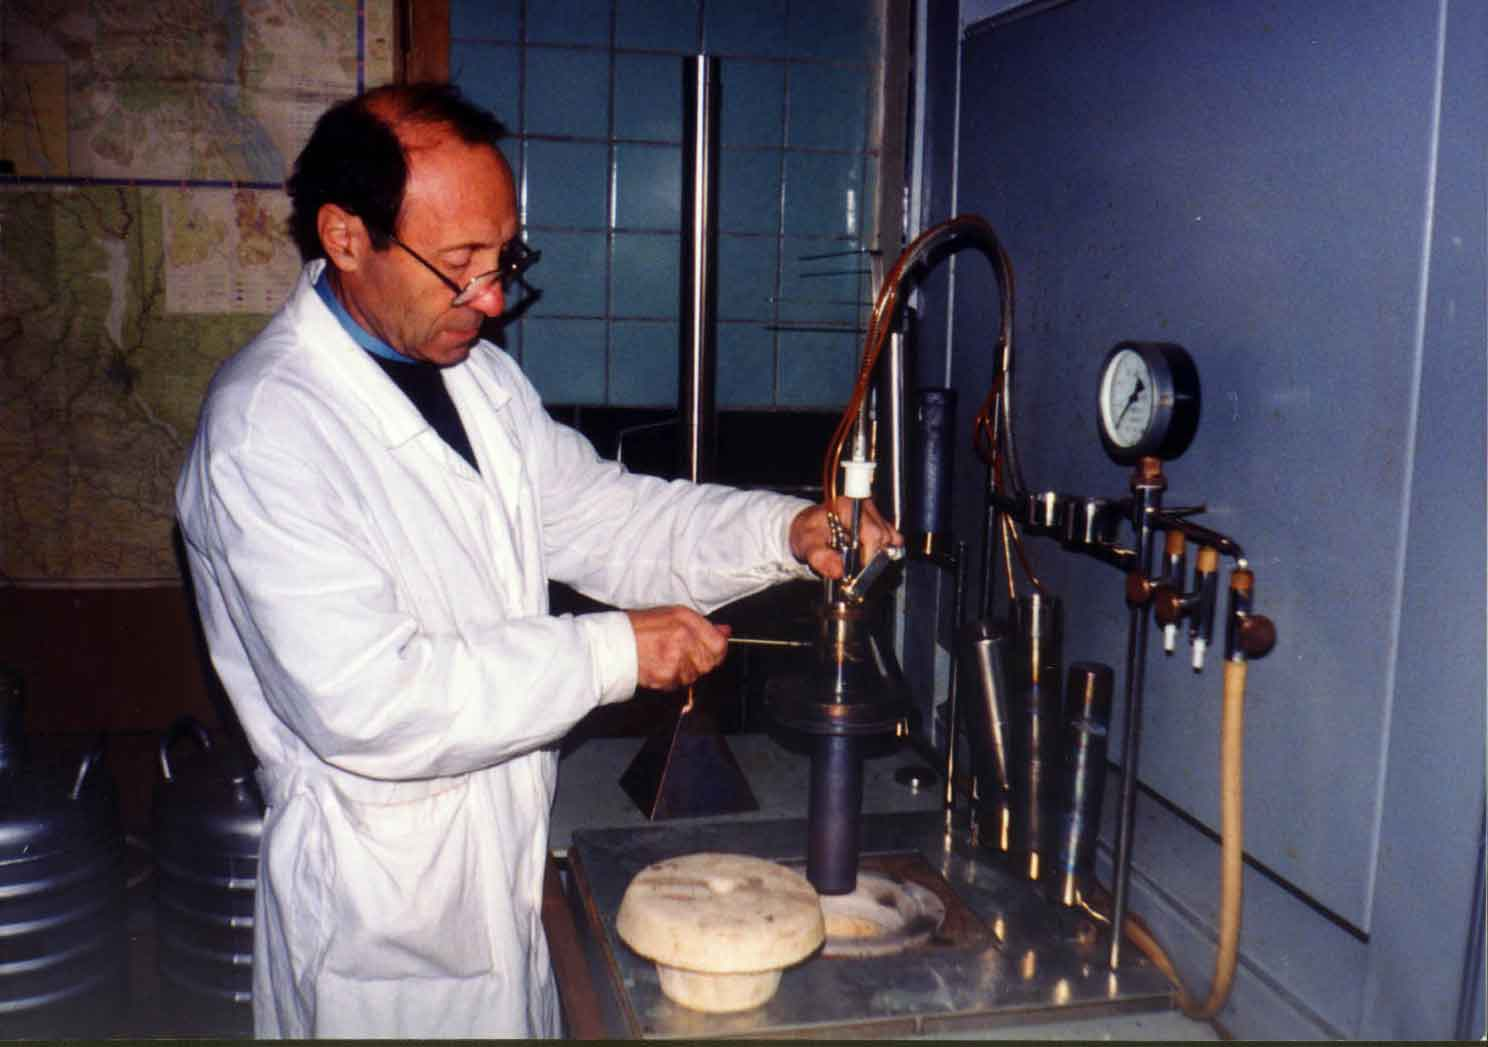 Suerc radiocarbon dating laboratory